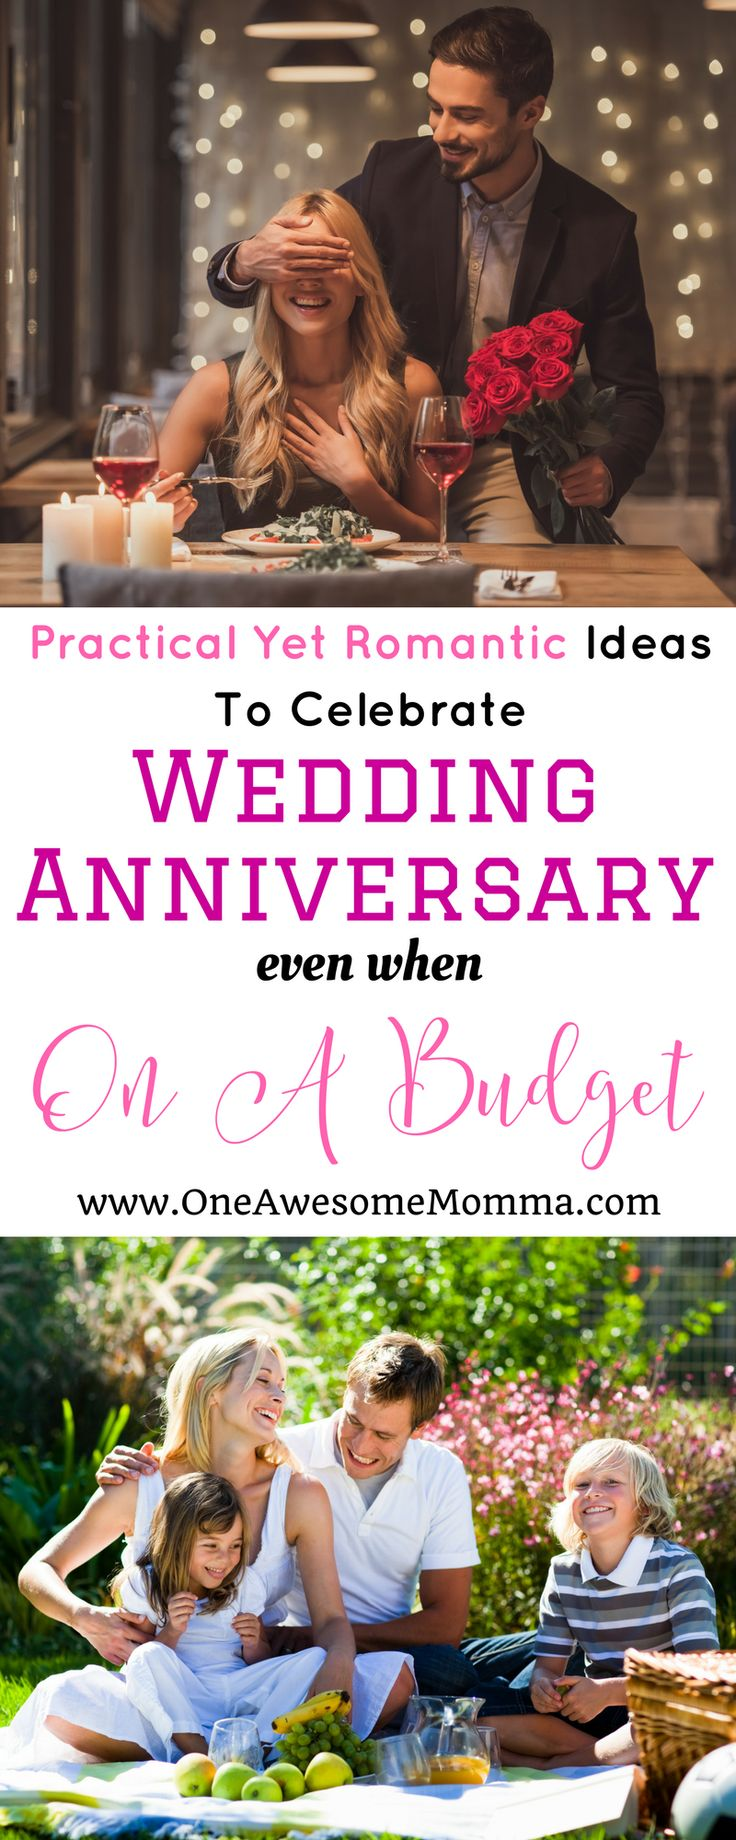 couple out on a romantic date, and a family having a picnic on a park - practical yet romantic ideas to celebrate wedding anniversary on a budget